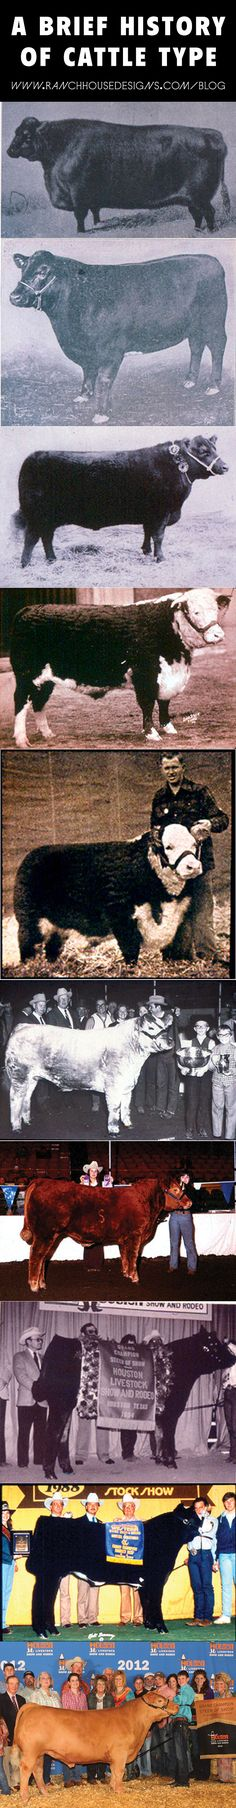 Harlan Ritchie's Brief History of Cattle Type - Ranch House Designs, Inc. Livestock Judging, Showing Livestock, Show Cows, Sweet Cow, Show Cattle, Beef Cattle, Animal Science, Ranch Life, Hobby Farms